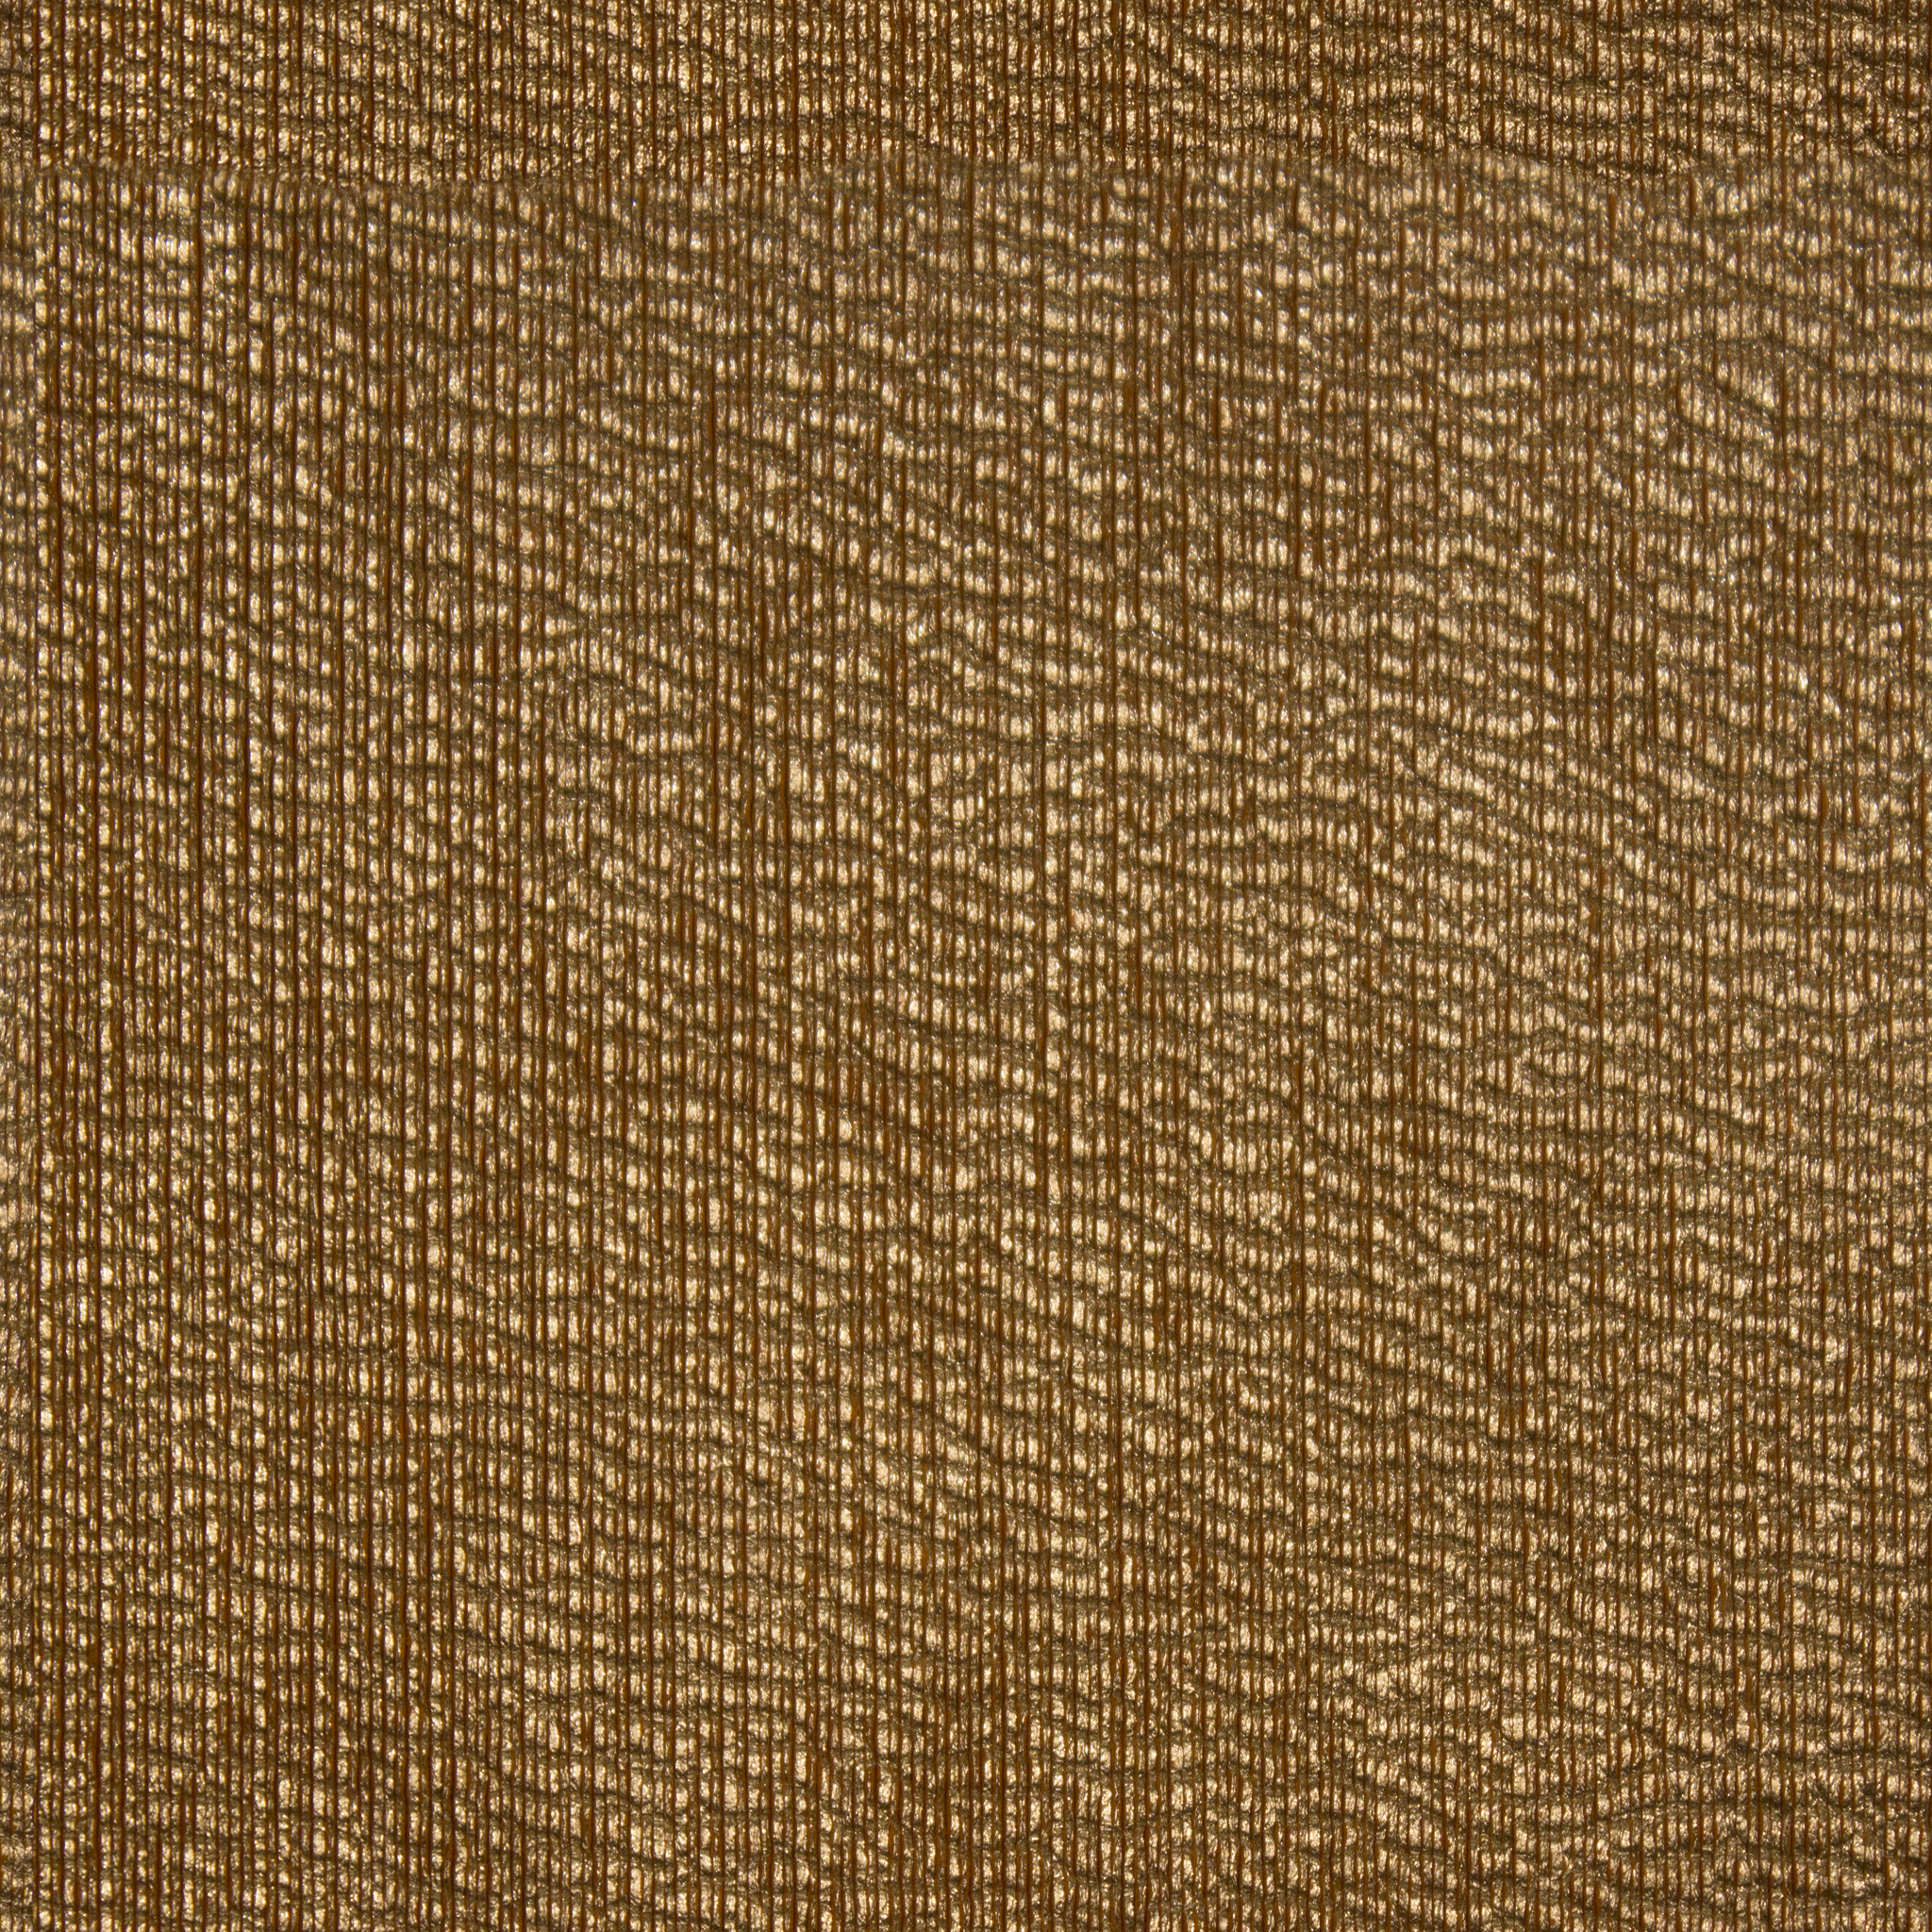 Bronze Finished Leather.jpg